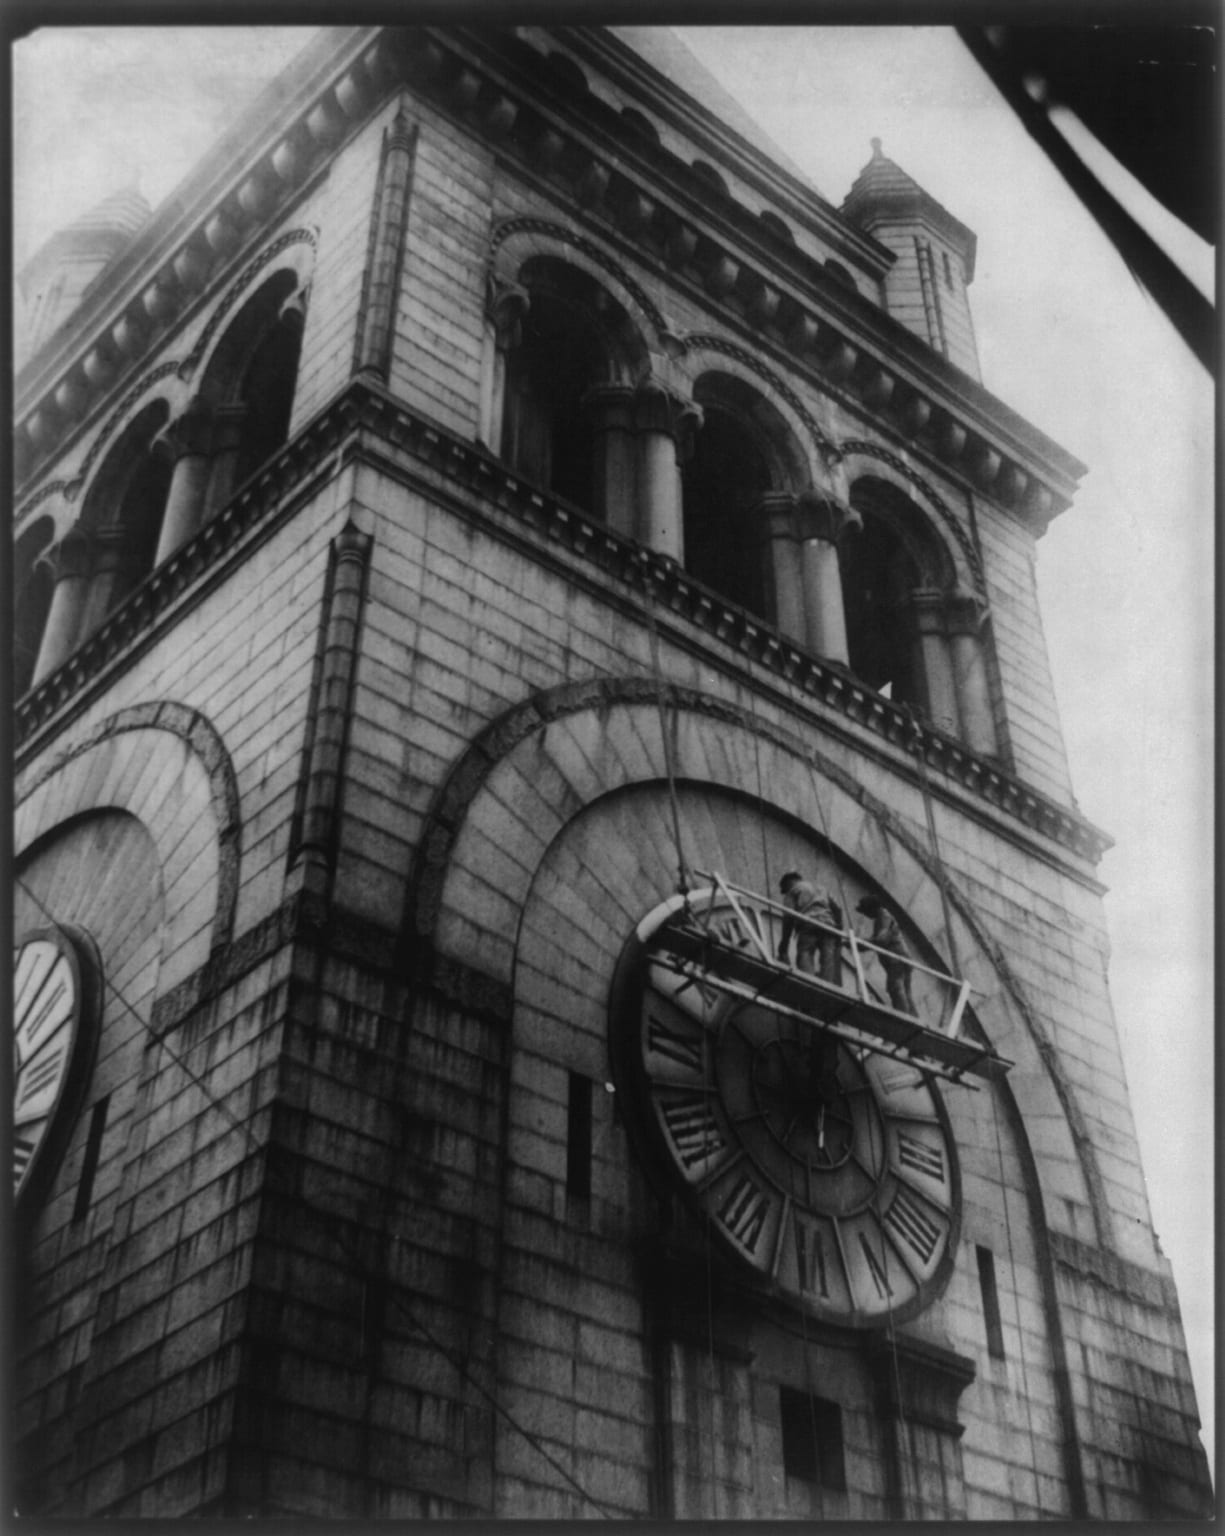 work being performed on the clock tower